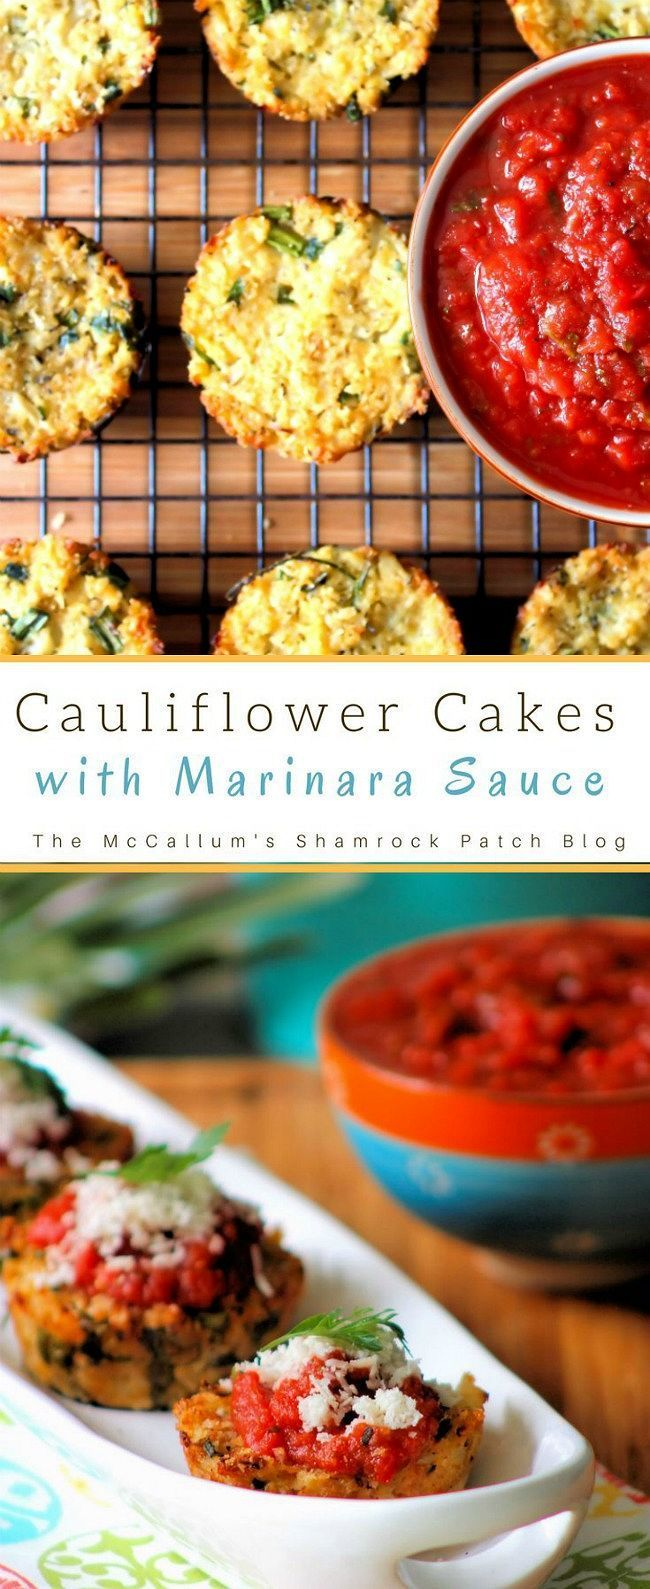 What's not to love about these Crispy Cauliflower Cakes with Marinara Sauce? These amazingly easy to make, husband approved Cauliflower Cakes will be one of those sinfully delicious, flavorful, yet almost guilt-free snacks you'll love to nosh on with your favorite Marinara Sauce.